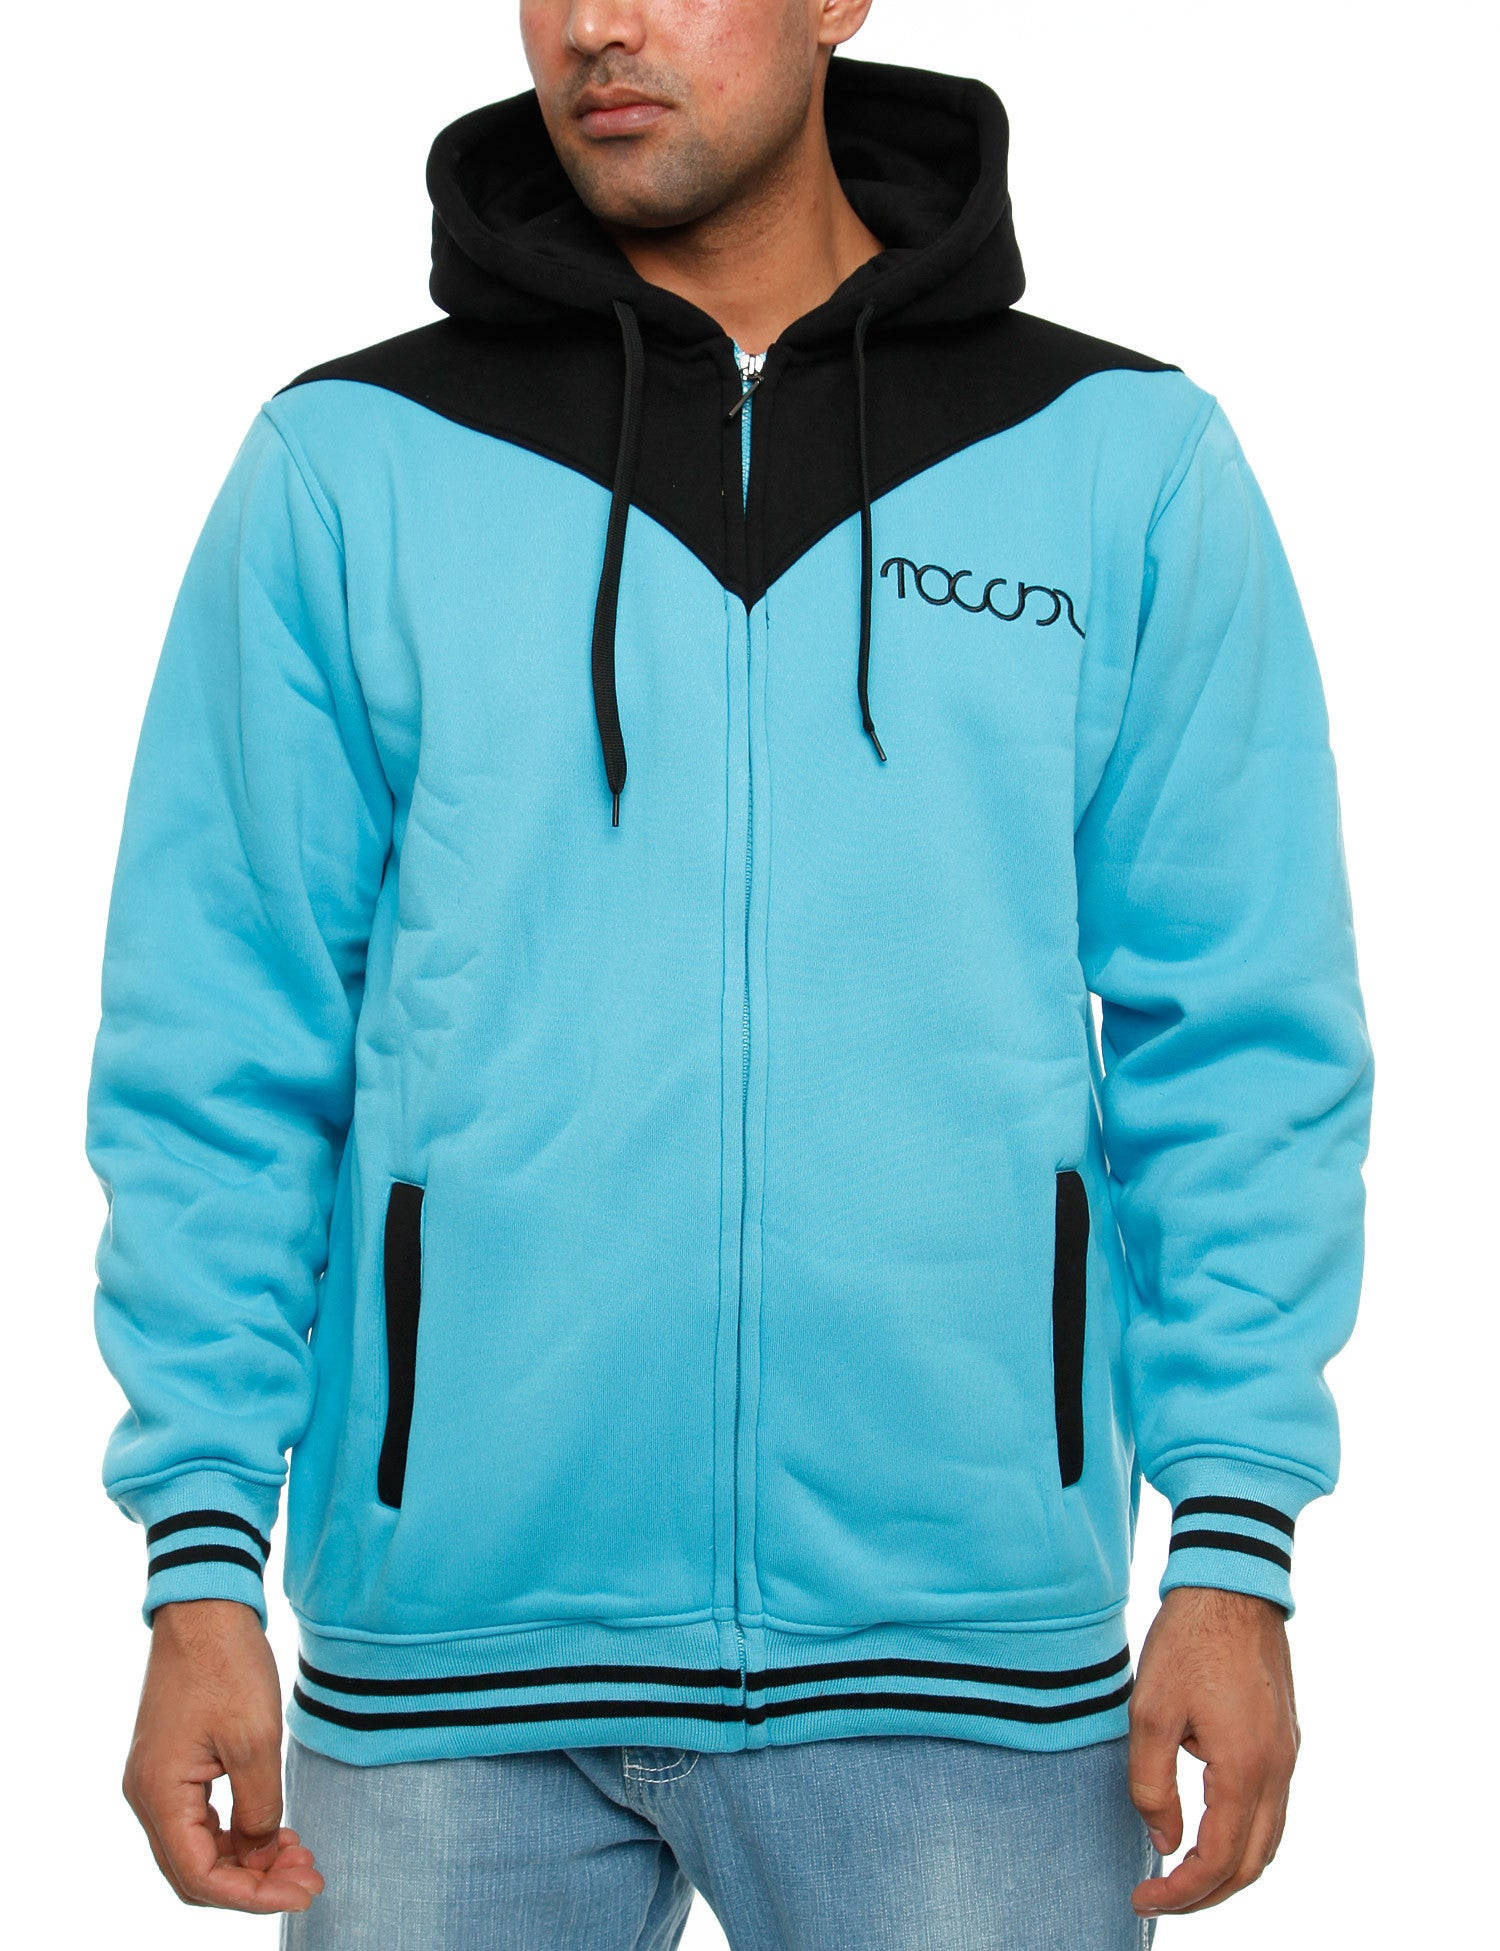 Townz Zip Hoody RWD-152A Turquoise